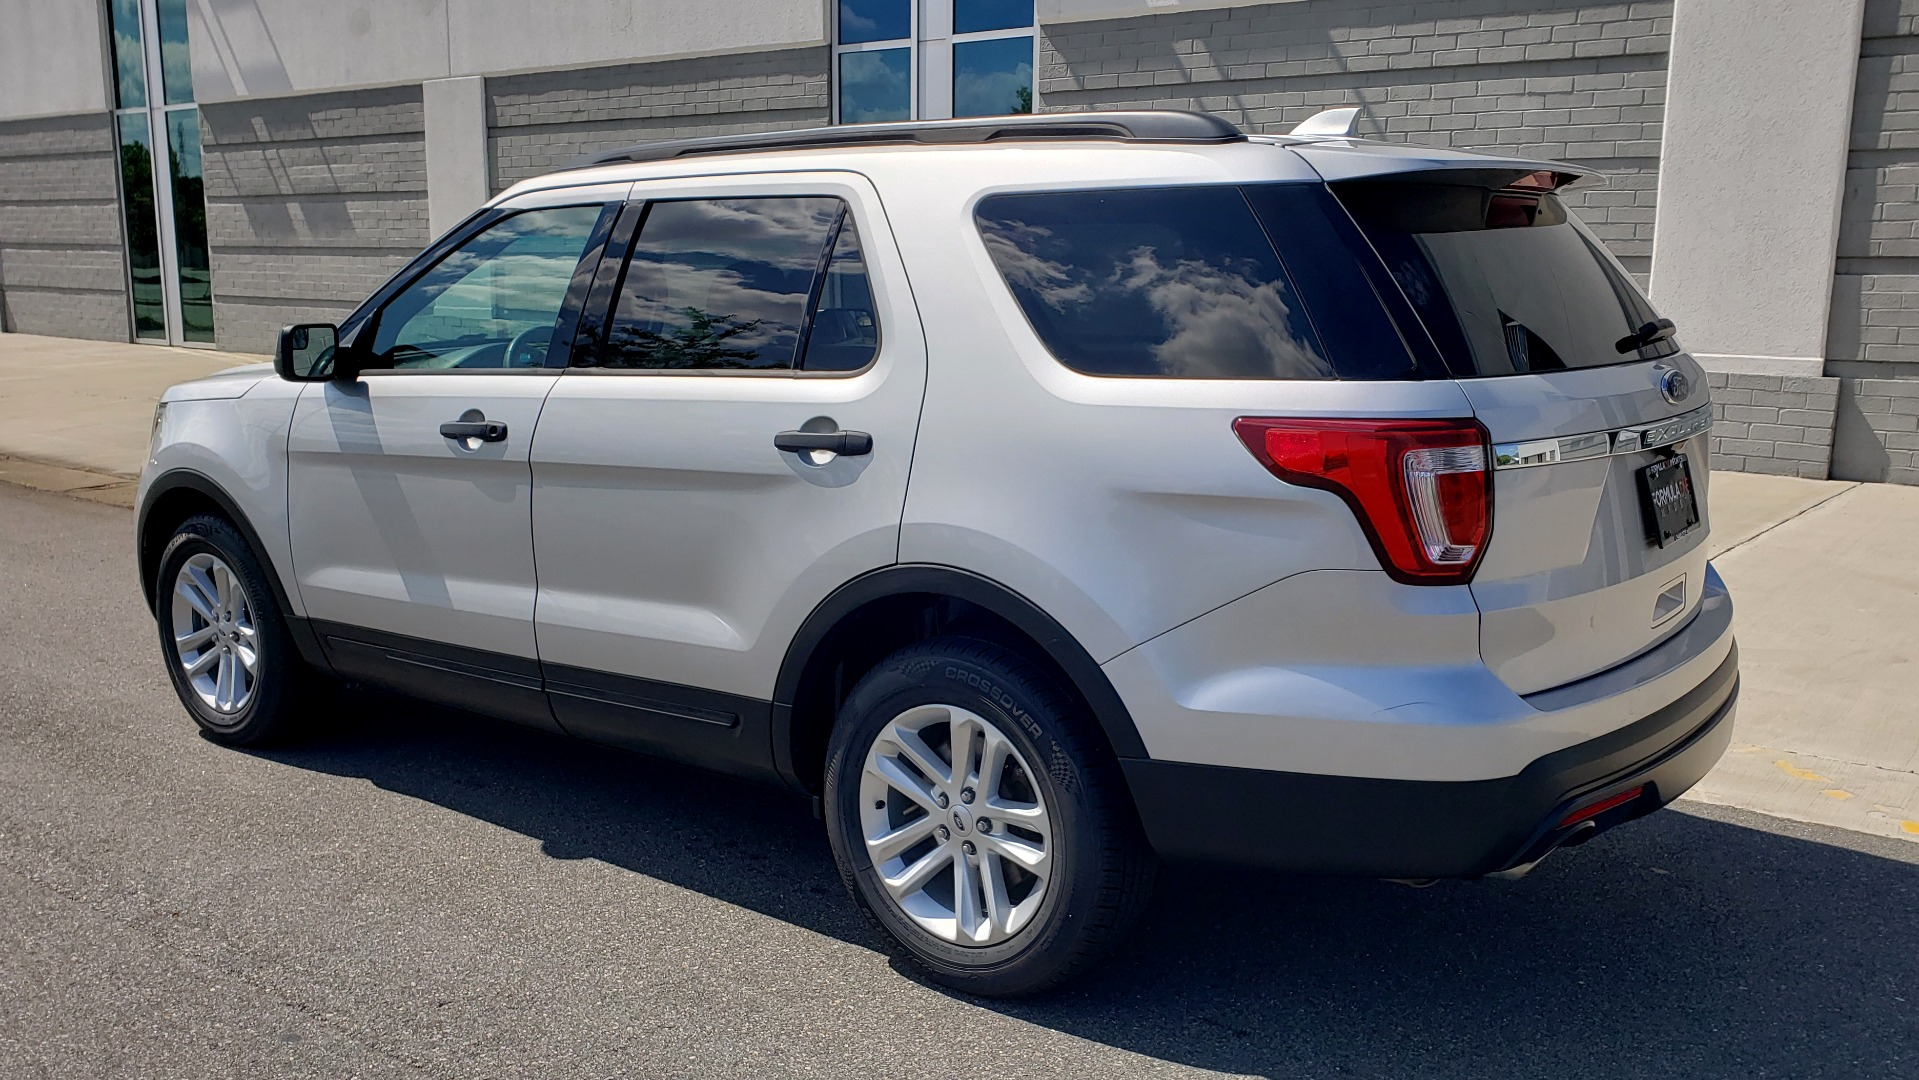 Used 2017 Ford EXPLORER 3.5L V6 / 6-SPD AUTO / BLIND SPOT MONITOR / 3-ROW / SYNC / REARVIEW for sale $22,995 at Formula Imports in Charlotte NC 28227 6